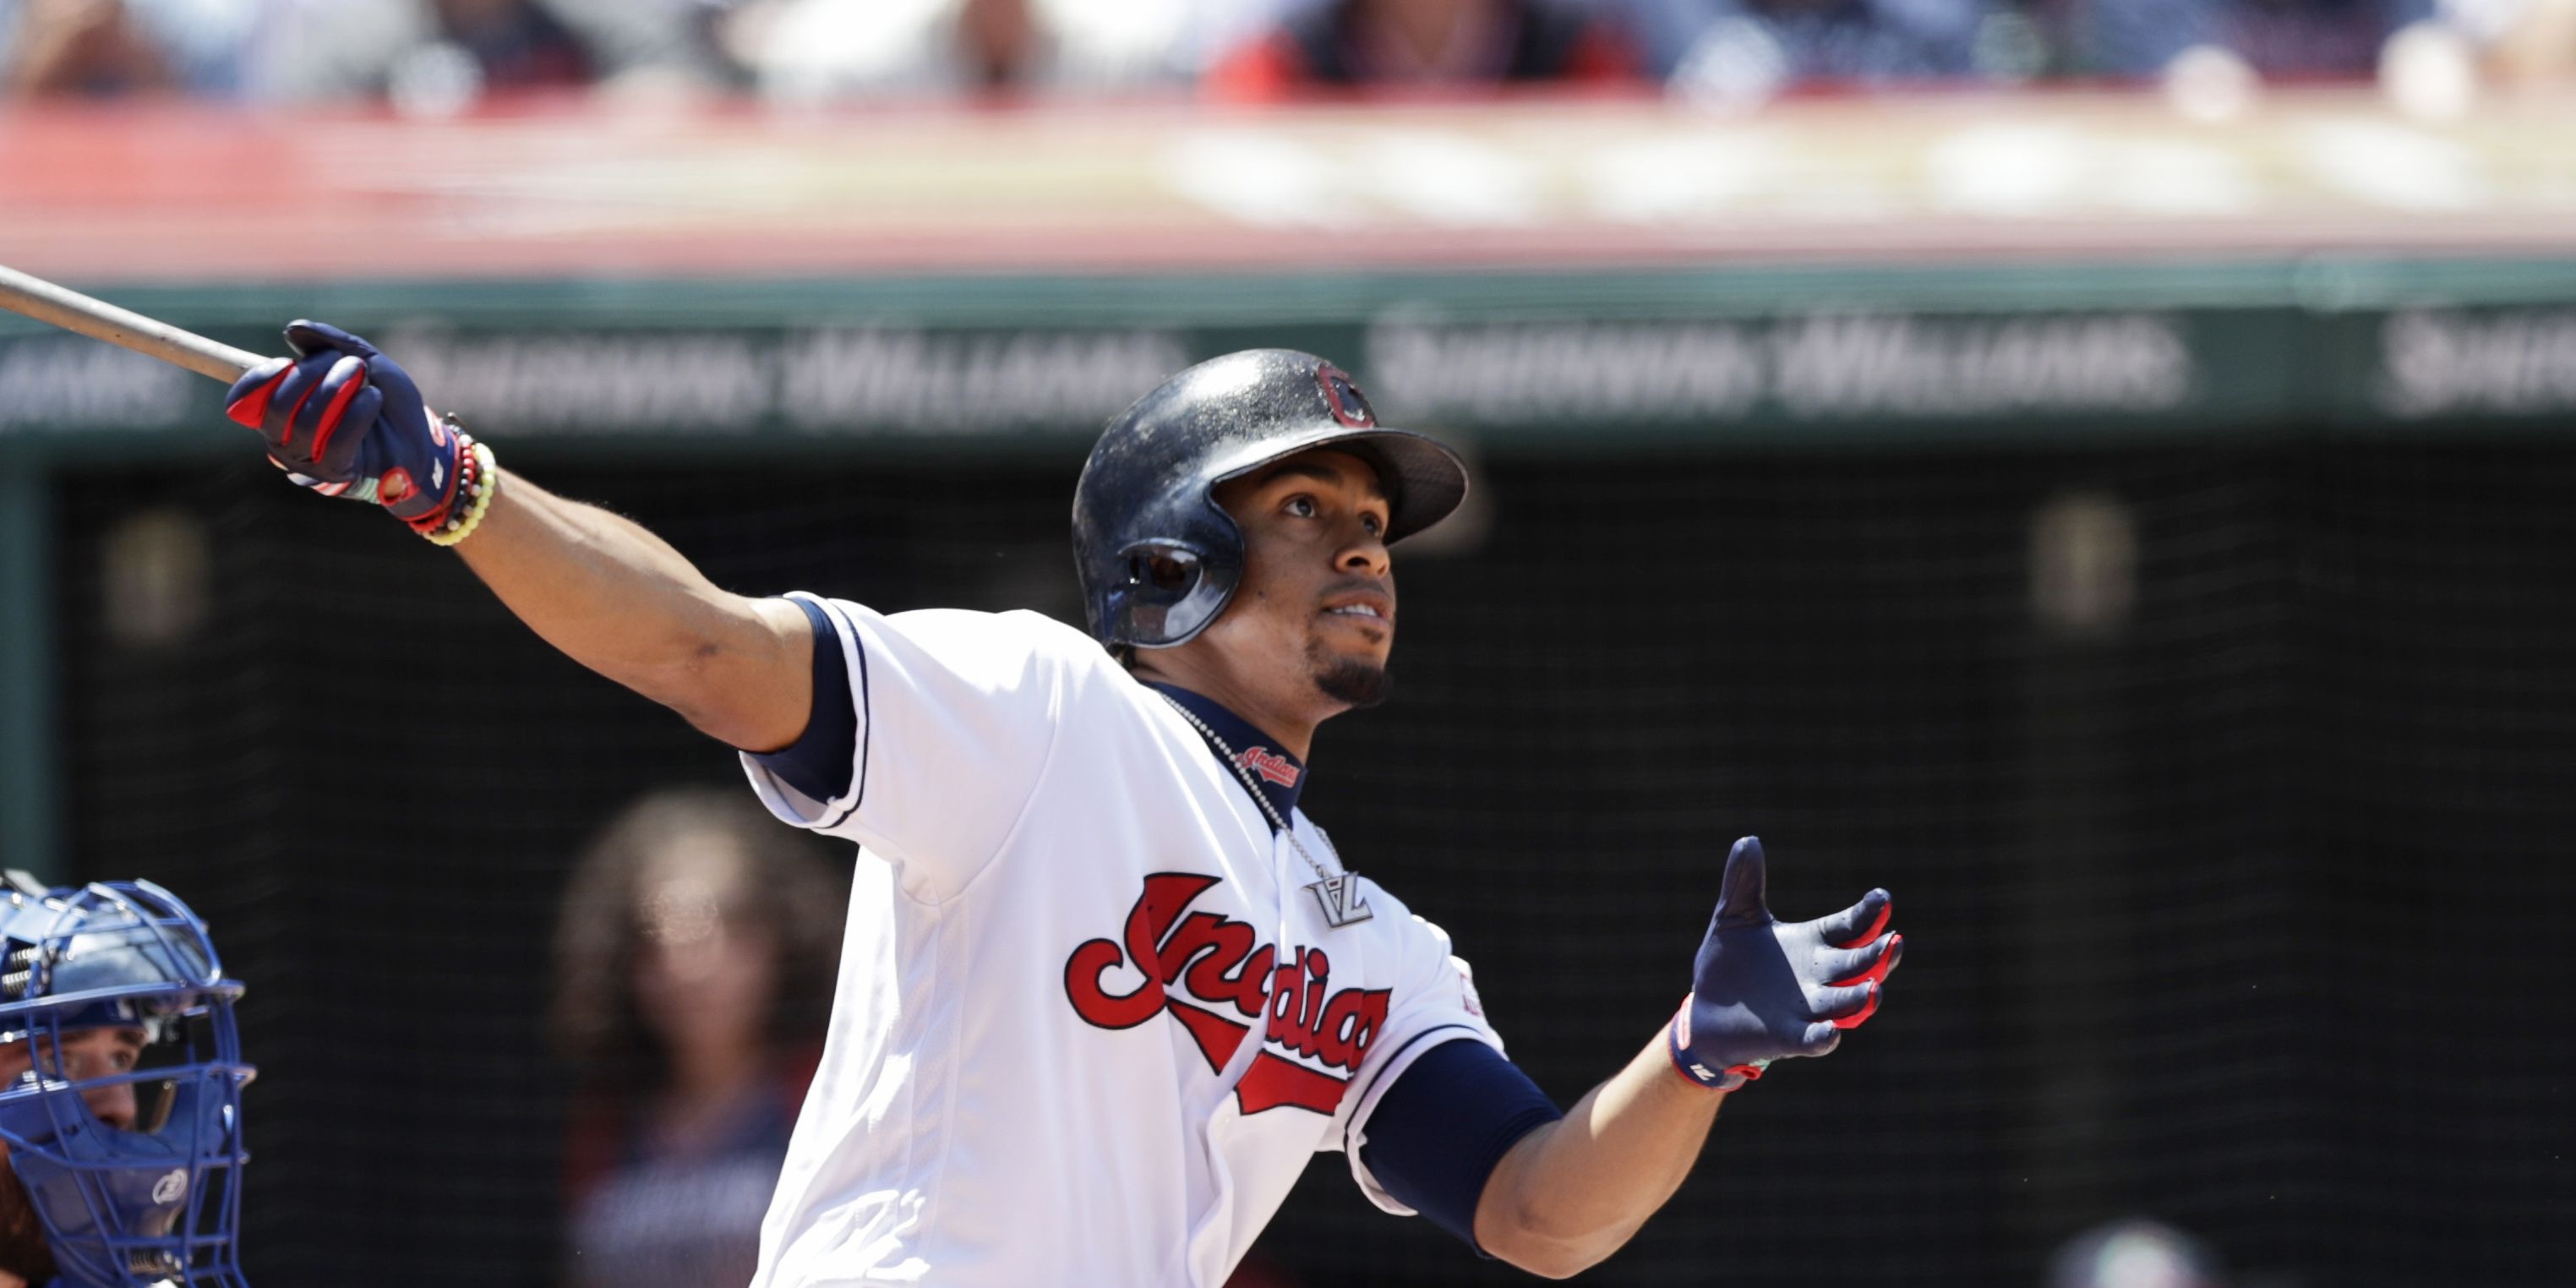 Cleveland Indians' Francisco Lindor wants MLB to extend protective netting after boy gets hit by his foul ball